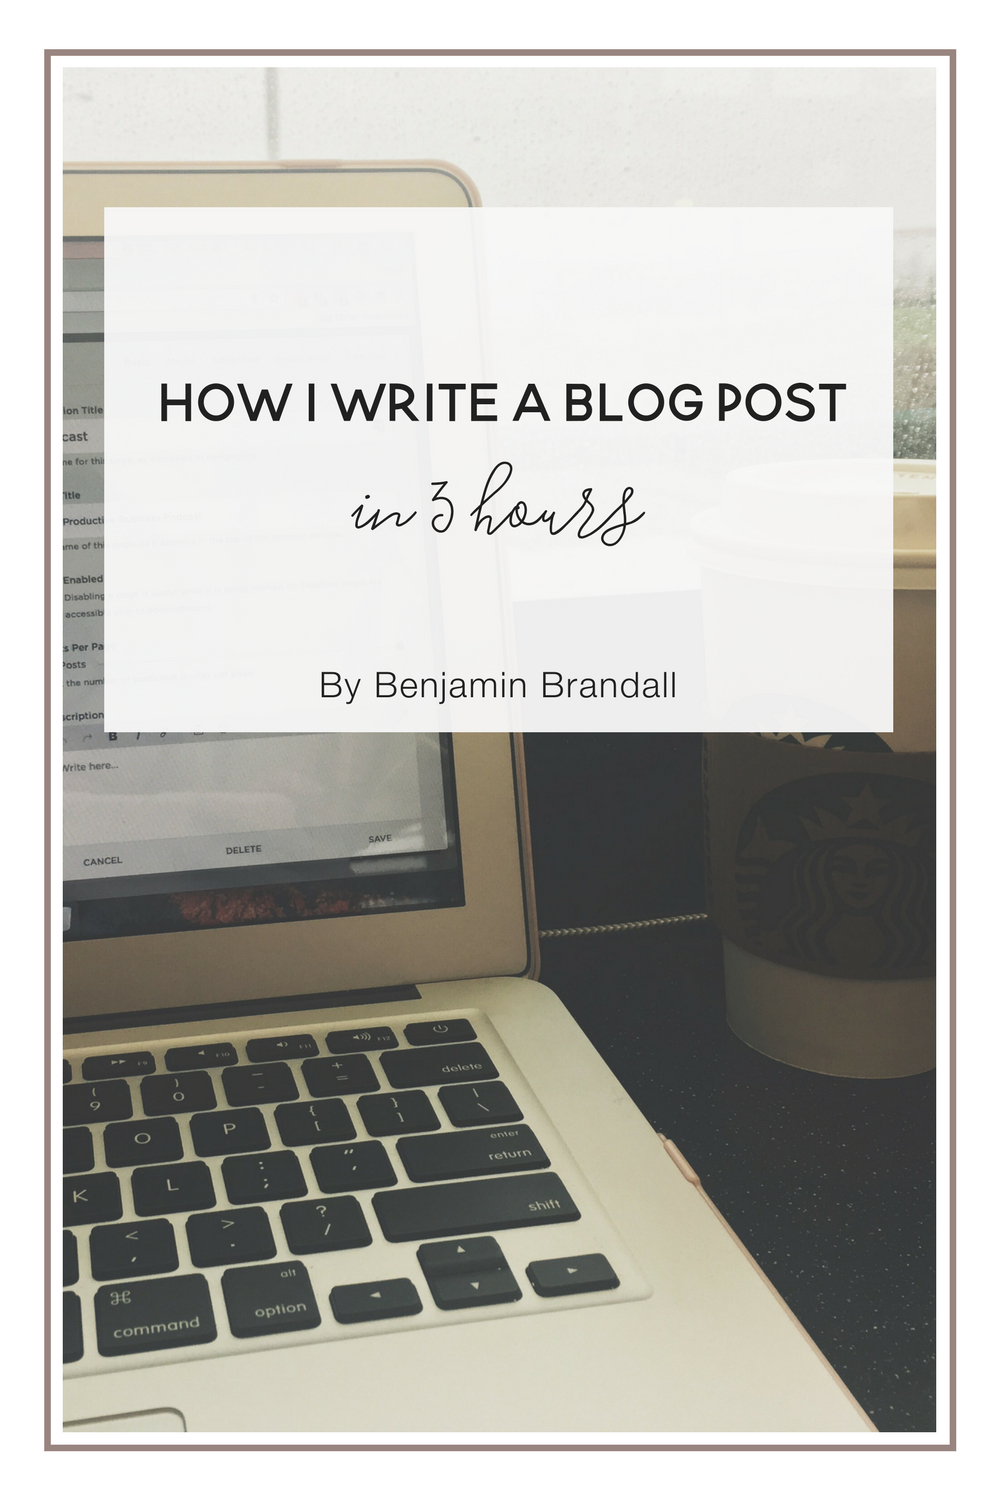 How to write a blog post in 3 hours